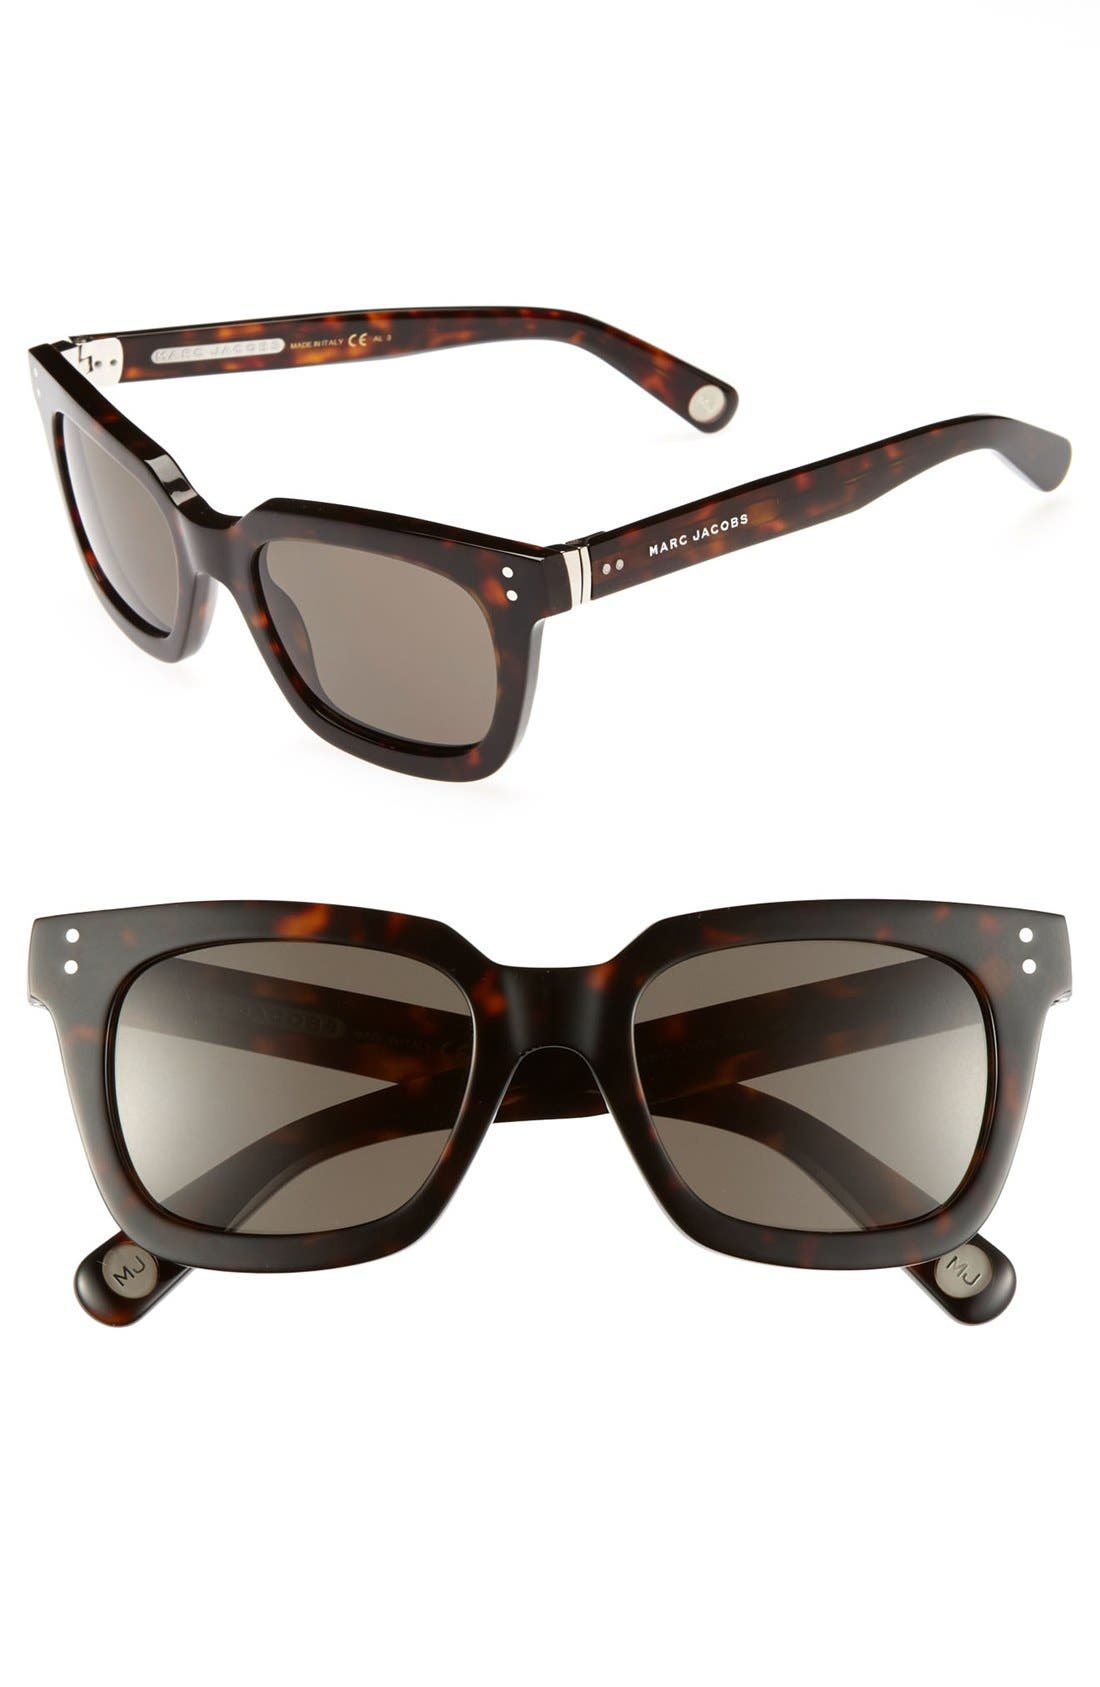 Main Image - MARC JACOBS 50mm Retro Sunglasses